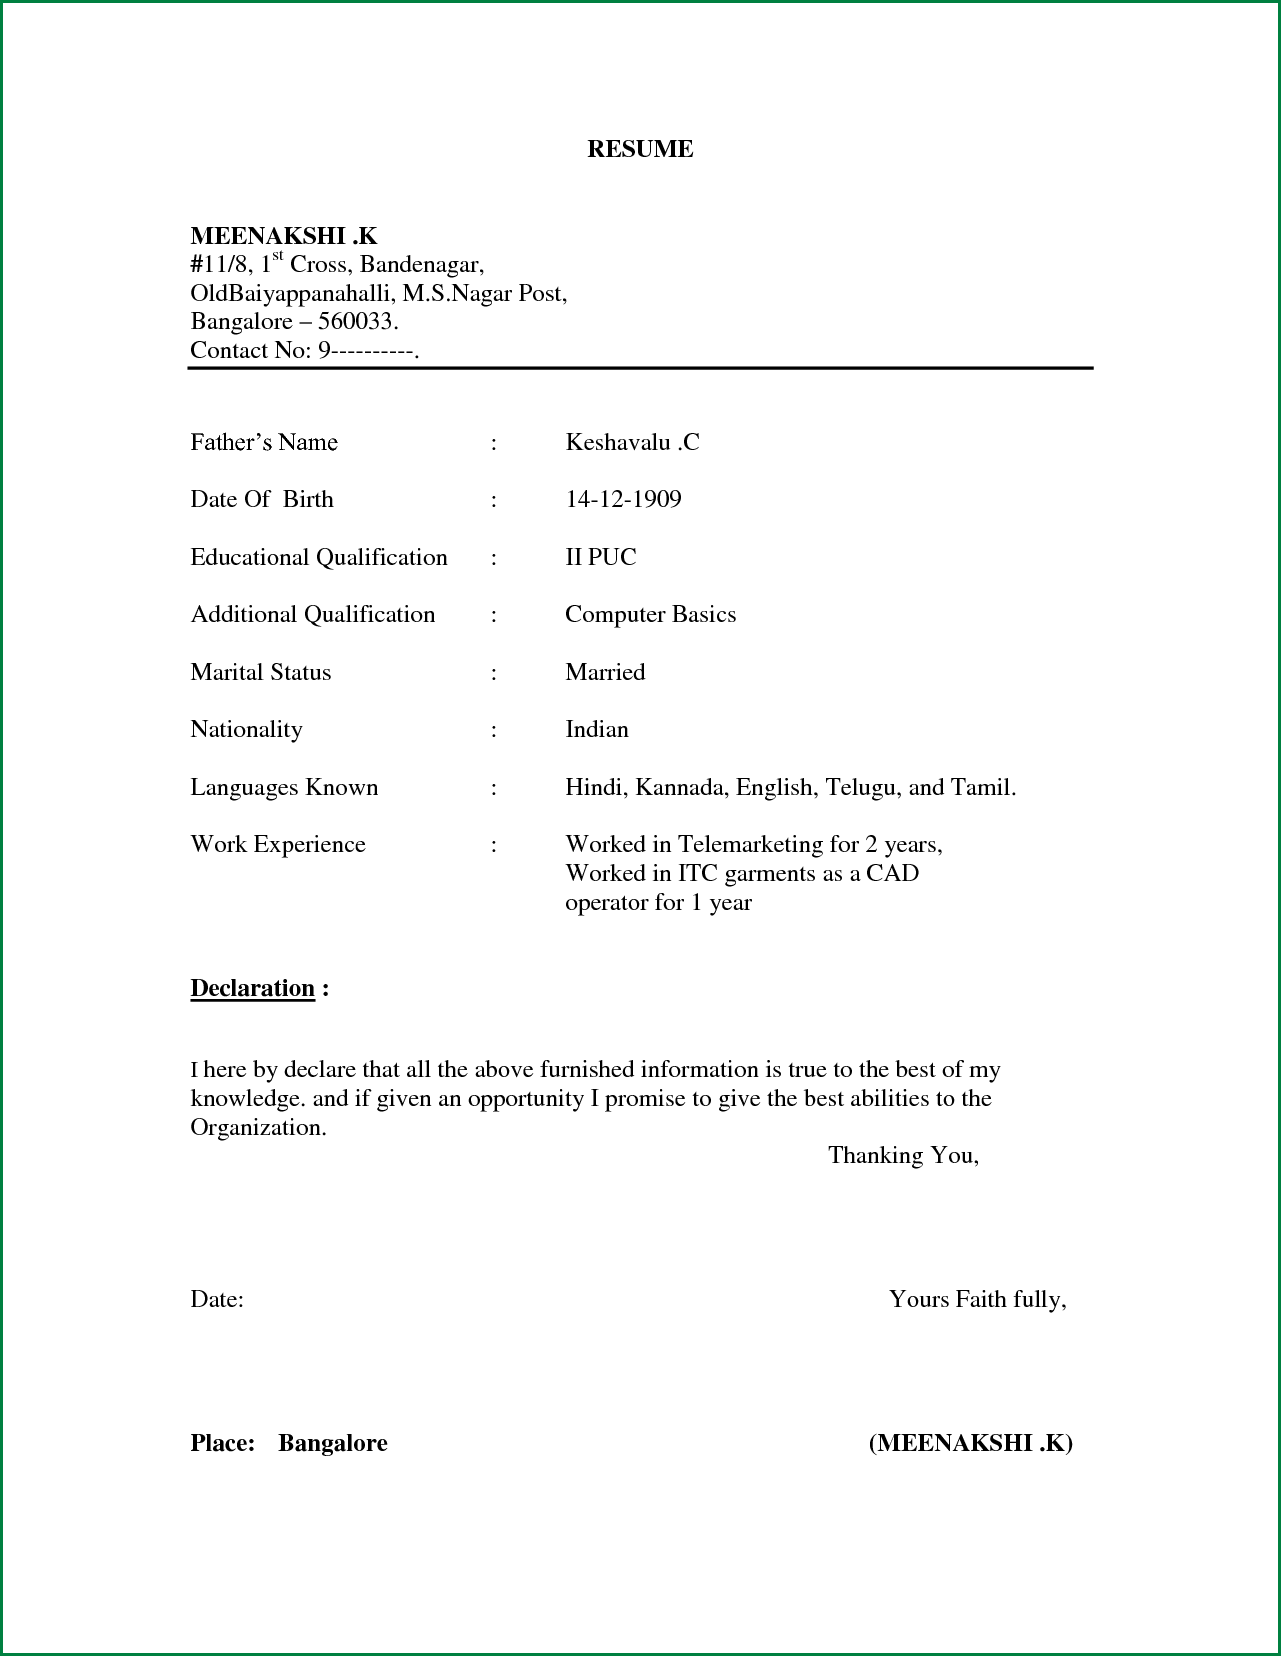 Basic Resume Awesome Simple Resume Format For Freshers In Word File137085913